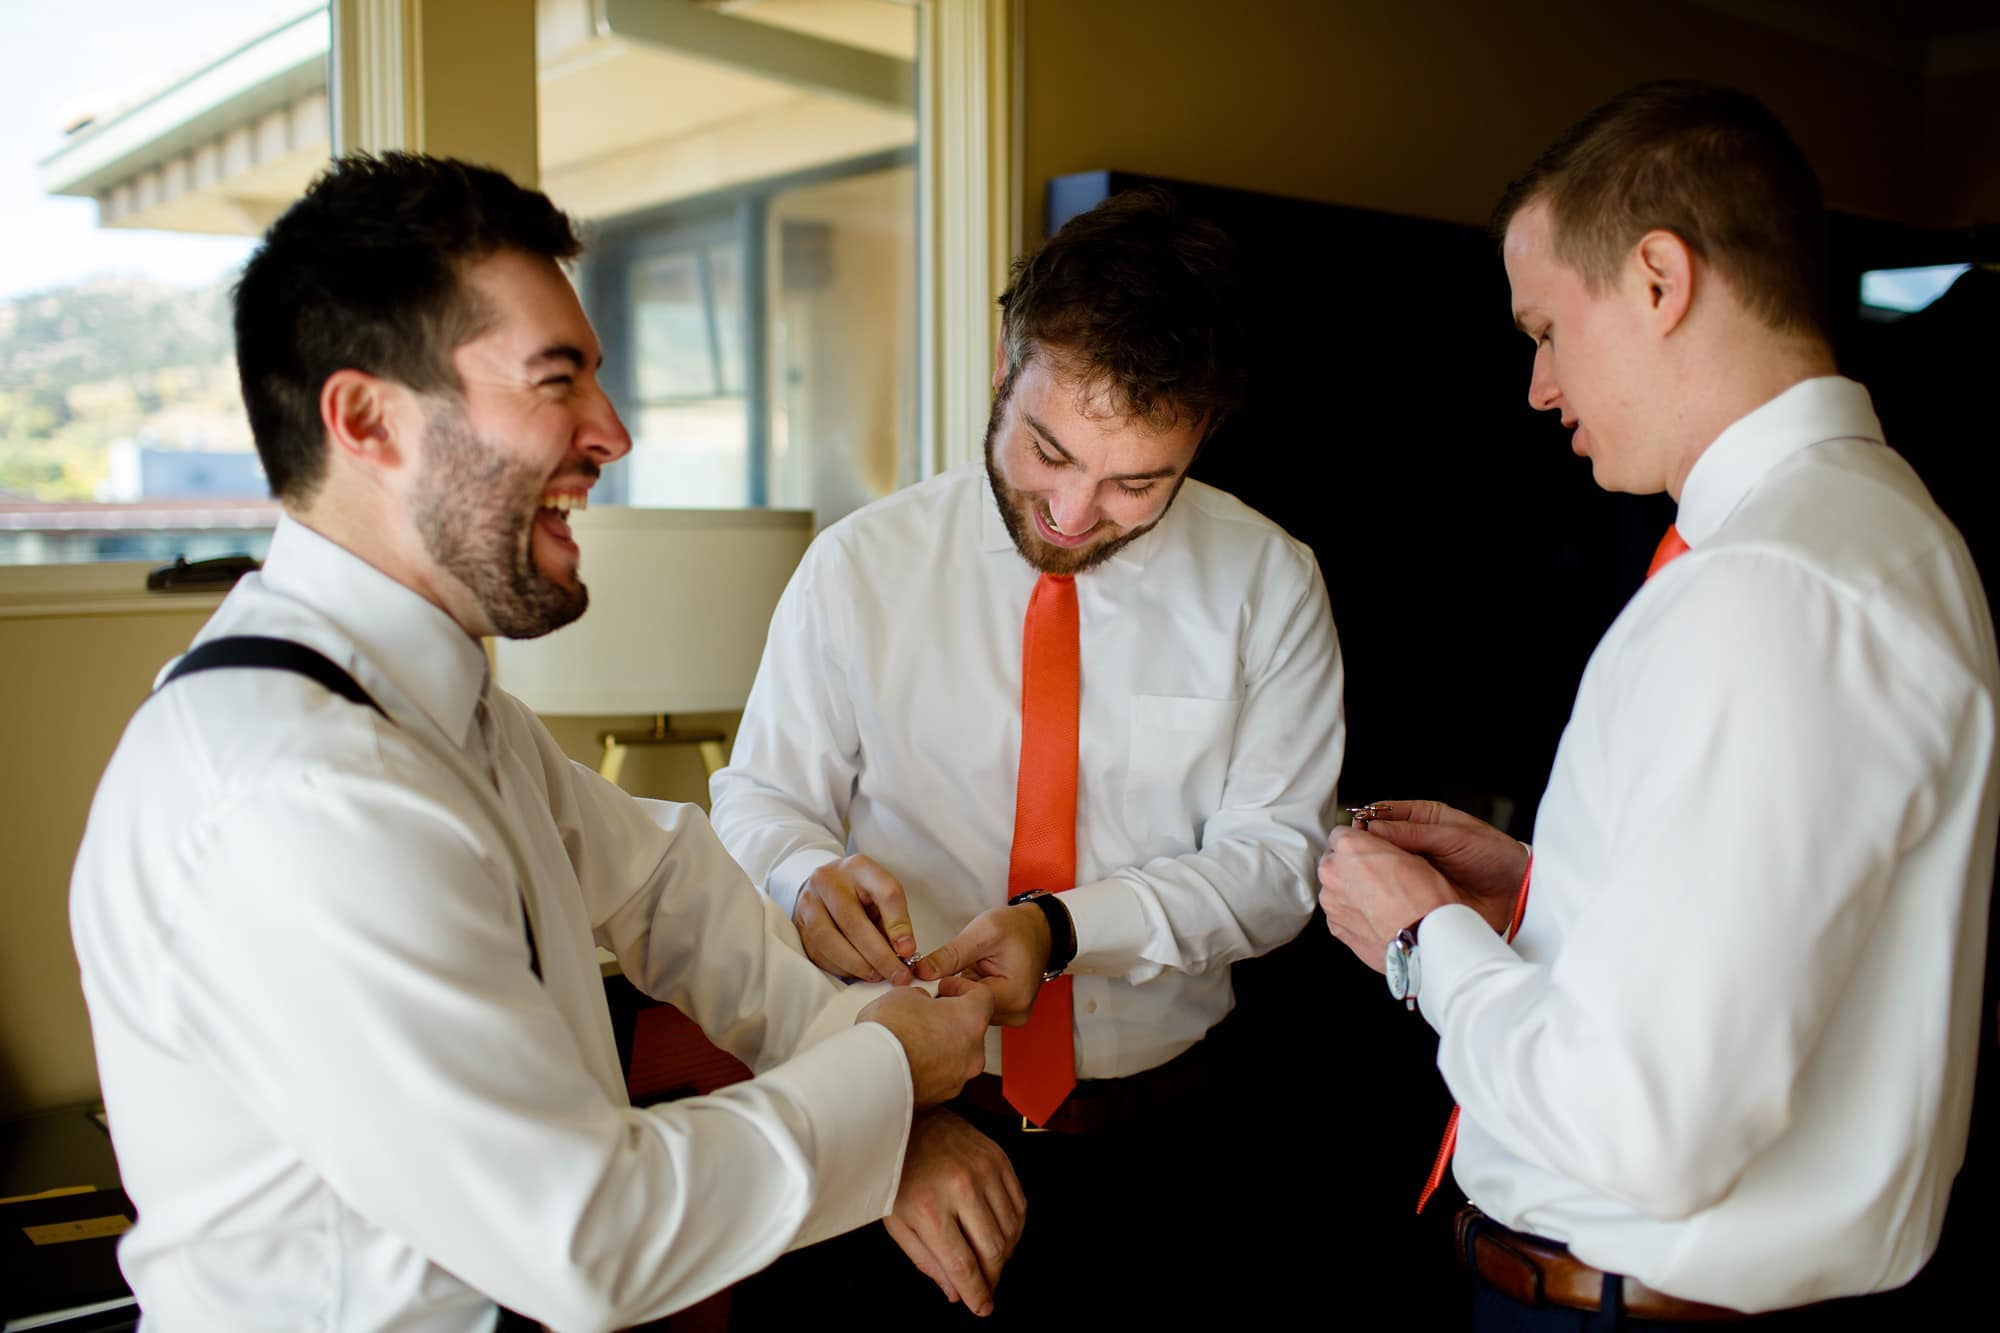 Bryan shares a laugh with his groomsmen while getting ready at the St. Julien Hotel in Boulder